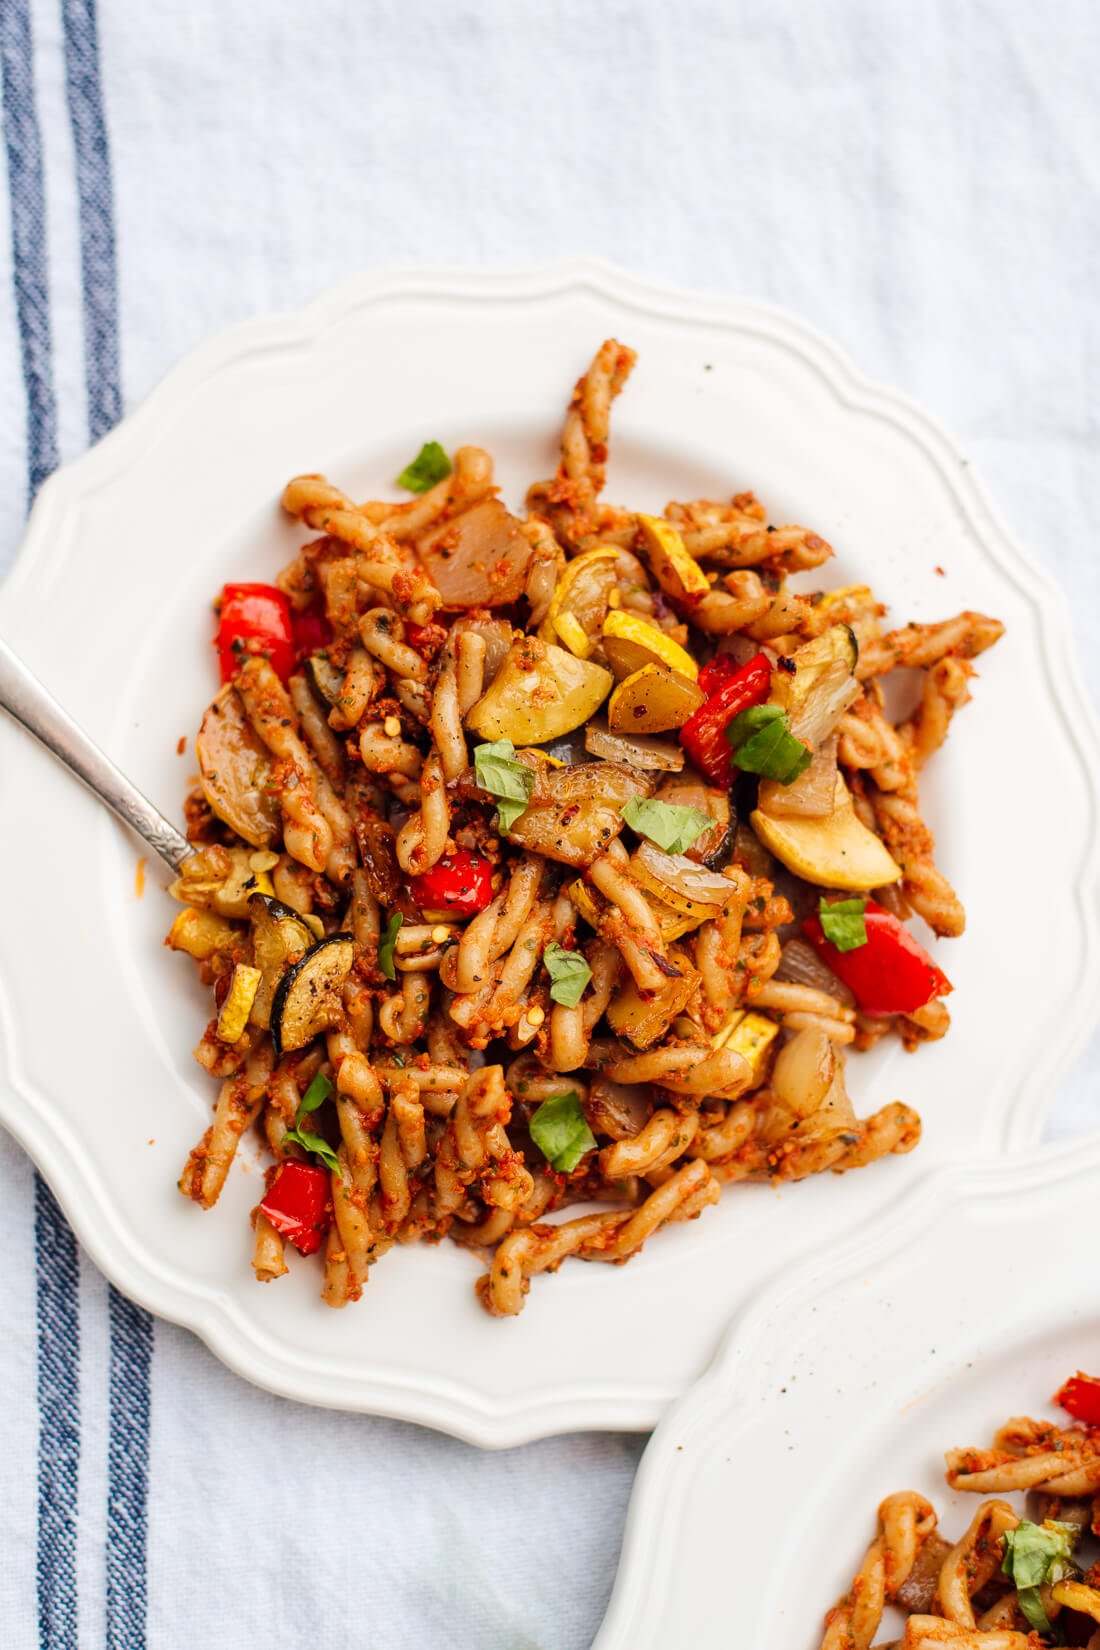 Sun-dried tomato pesto pasta with roasted vegetables